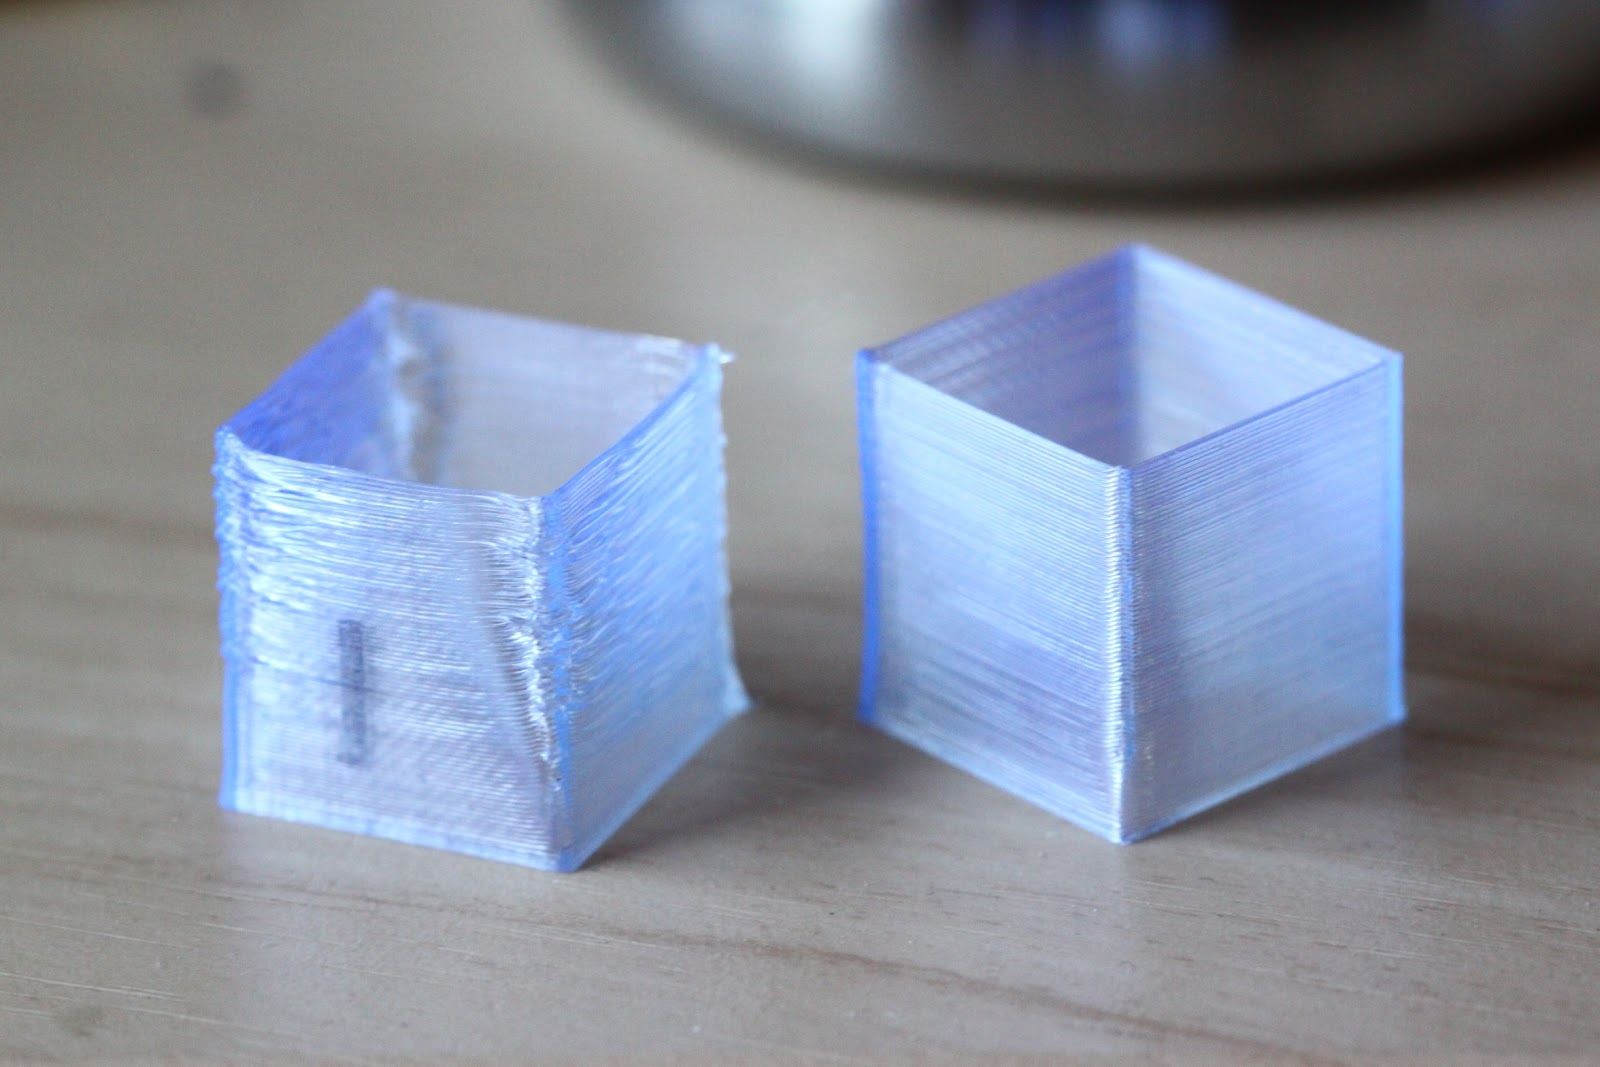 print with curled corners next to one without